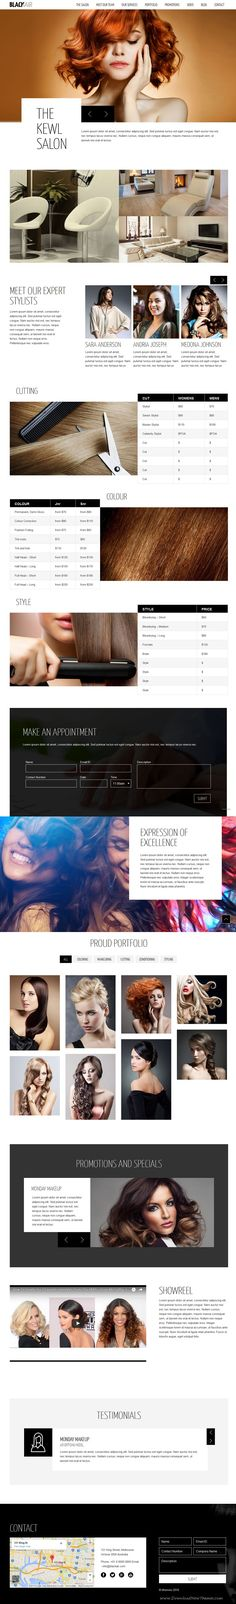 Blackair is a Responsive, One Page Parallax, and Retina enabled WordPress theme built using Bootstrap 3+ framework for #Hairdressers, Hair #salons, Stylists and similar professionals #website. Download Now!